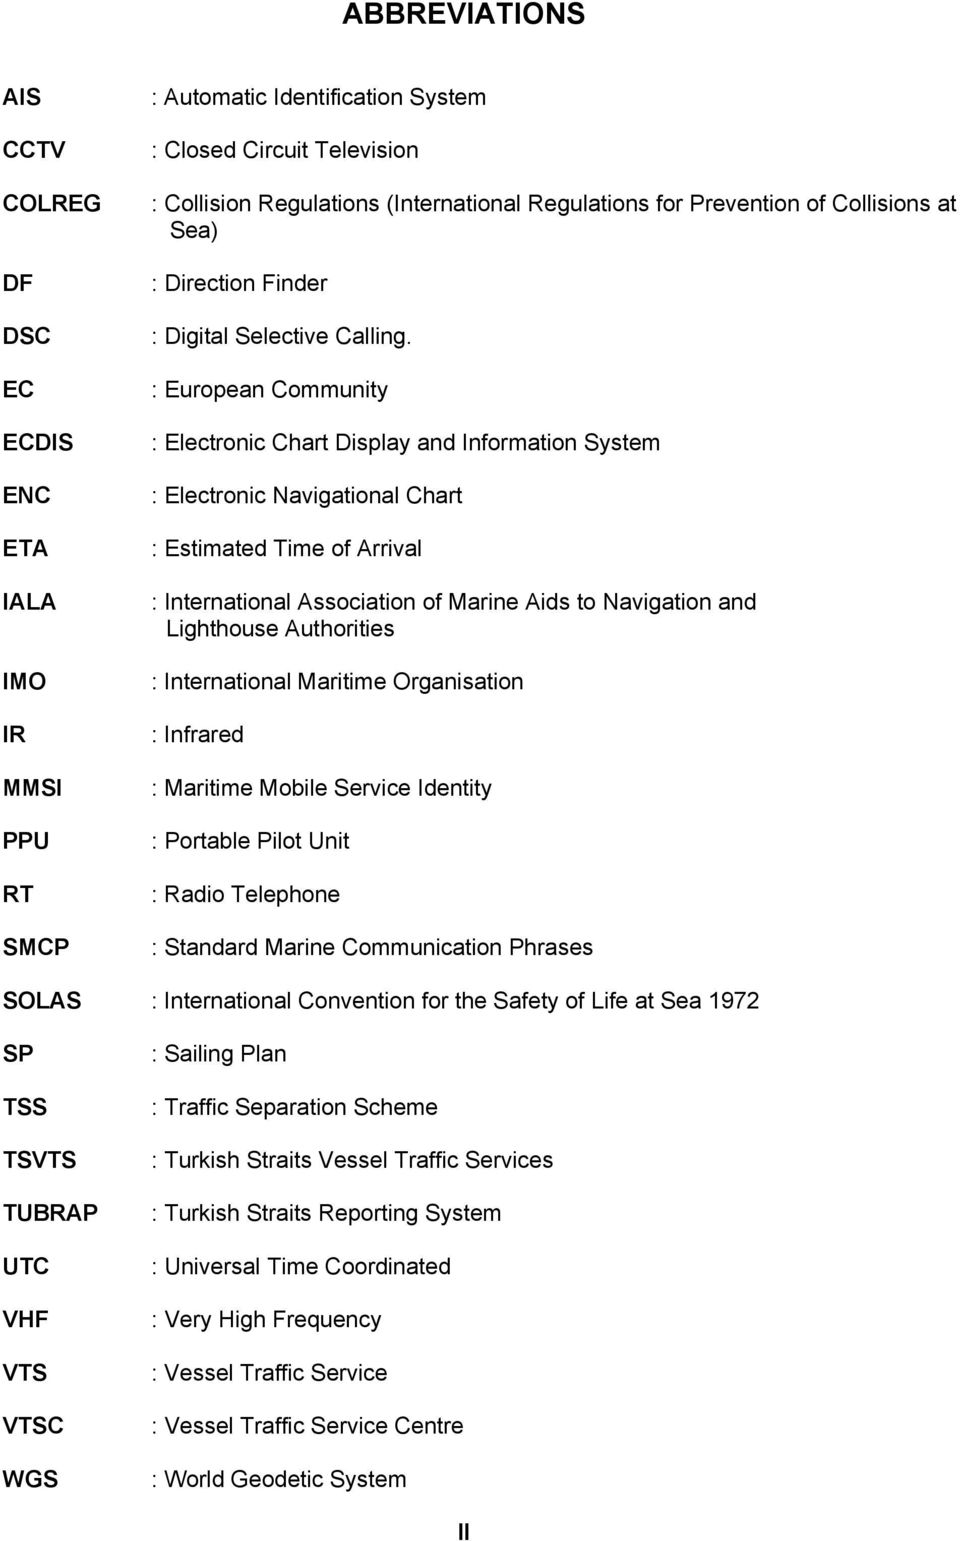 : European Community : Electronic Chart Display and Information System : Electronic Navigational Chart : Estimated Time of Arrival : International Association of Marine Aids to Navigation and